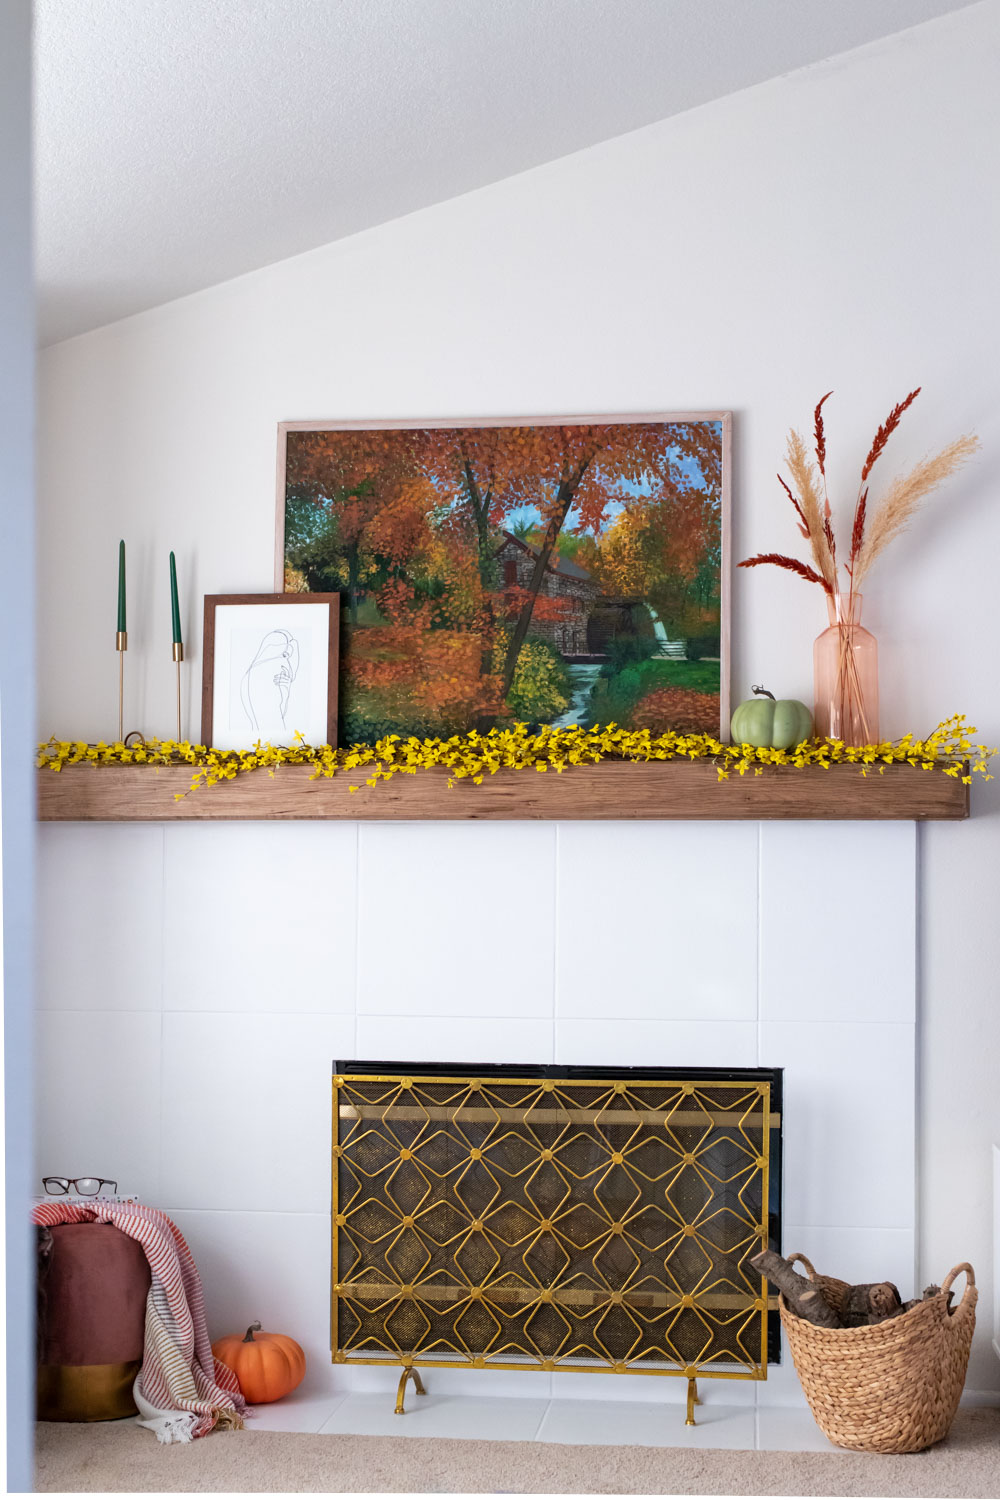 final reveal and result of how to paint a tile fireplace